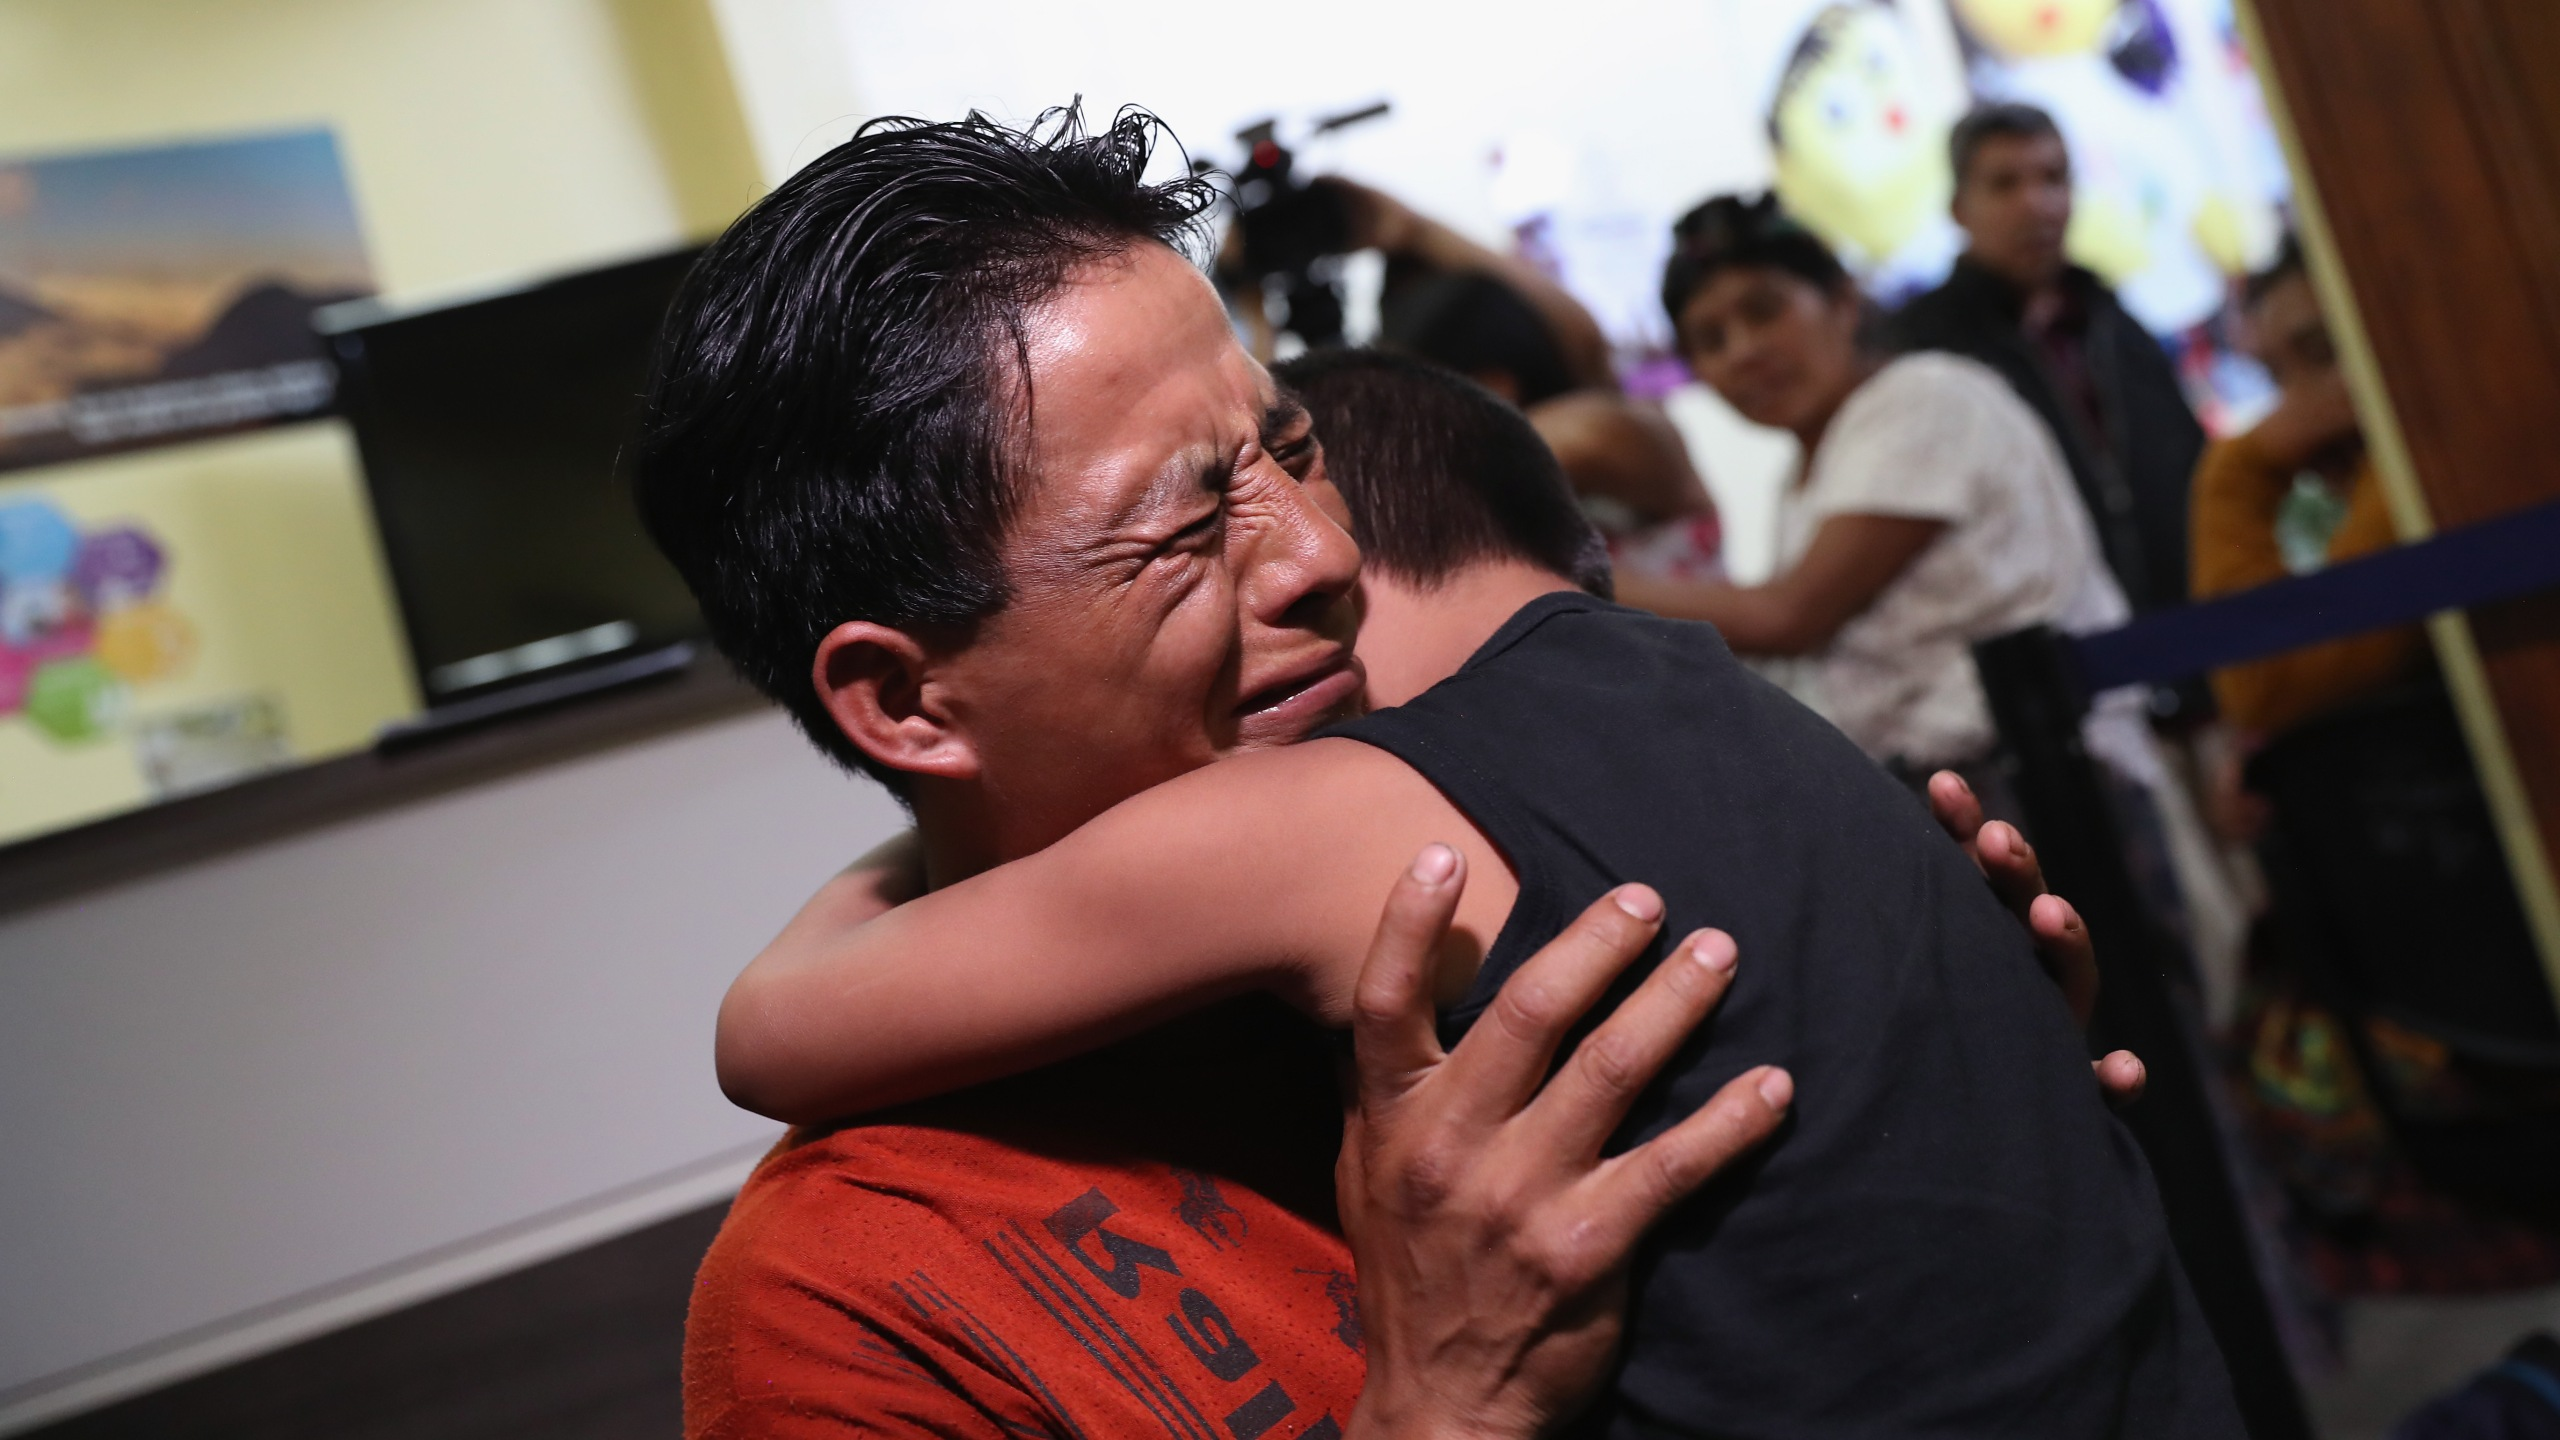 A father embraces his son for the first time in months on Aug. 7, 2018, in Guatemala. (Credit: John Moore/Getty Images)